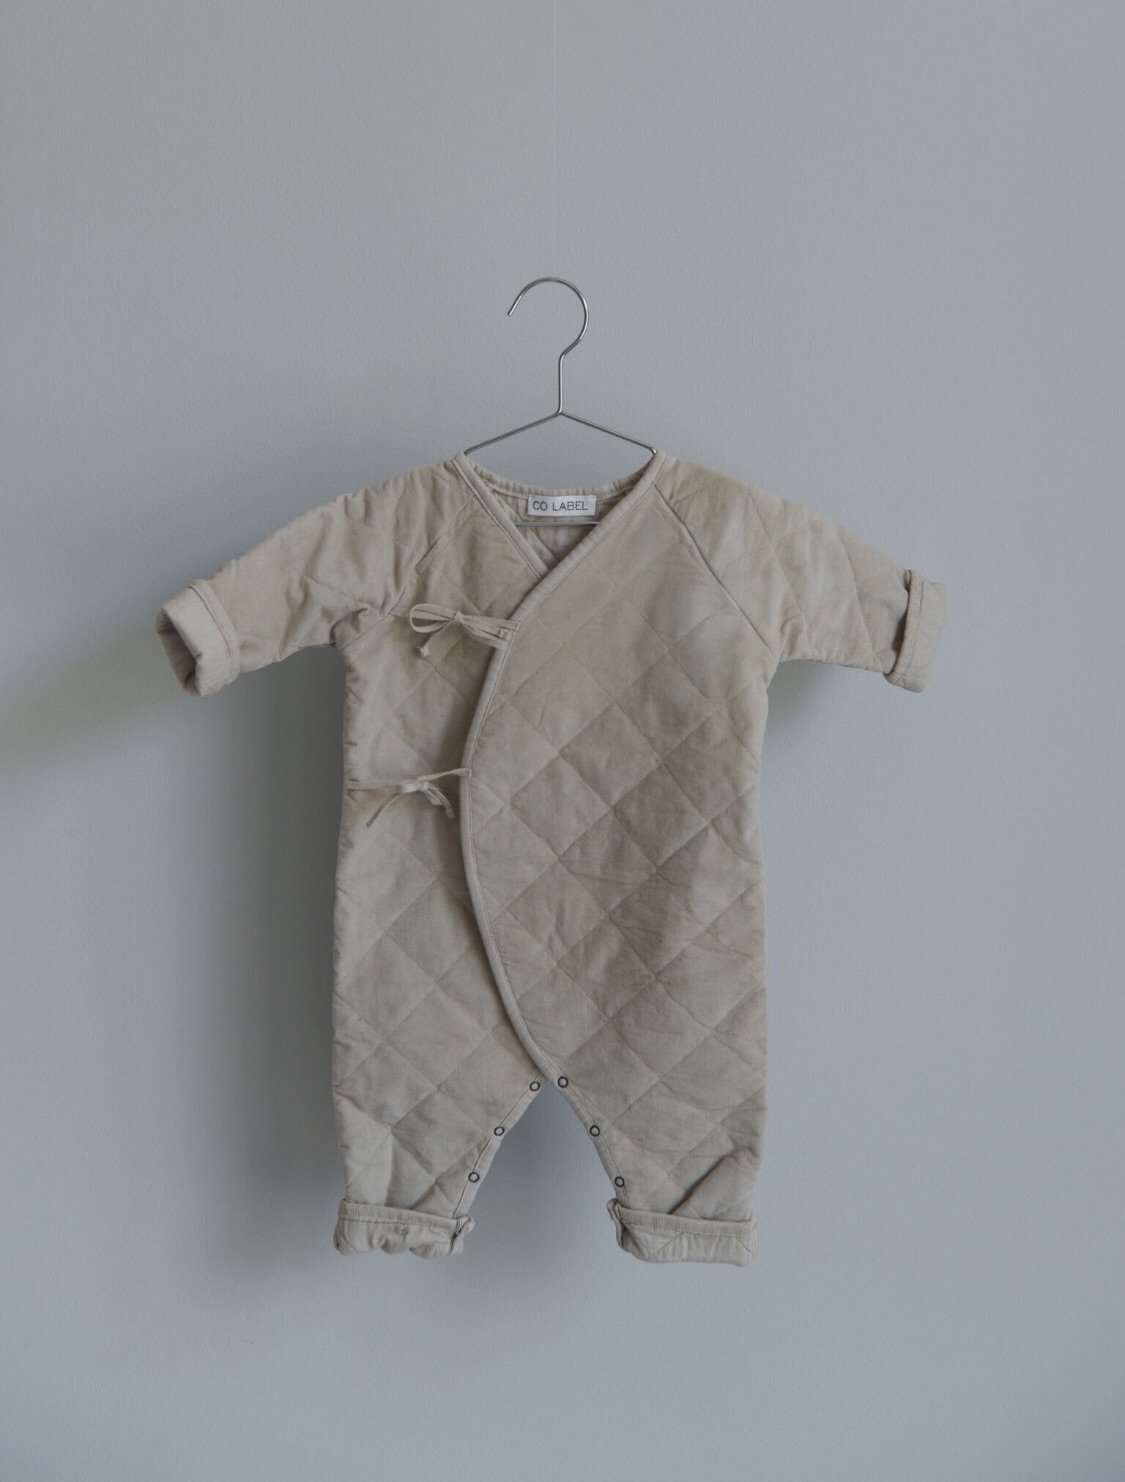 CO LABEL Eddie babysuit - sand -